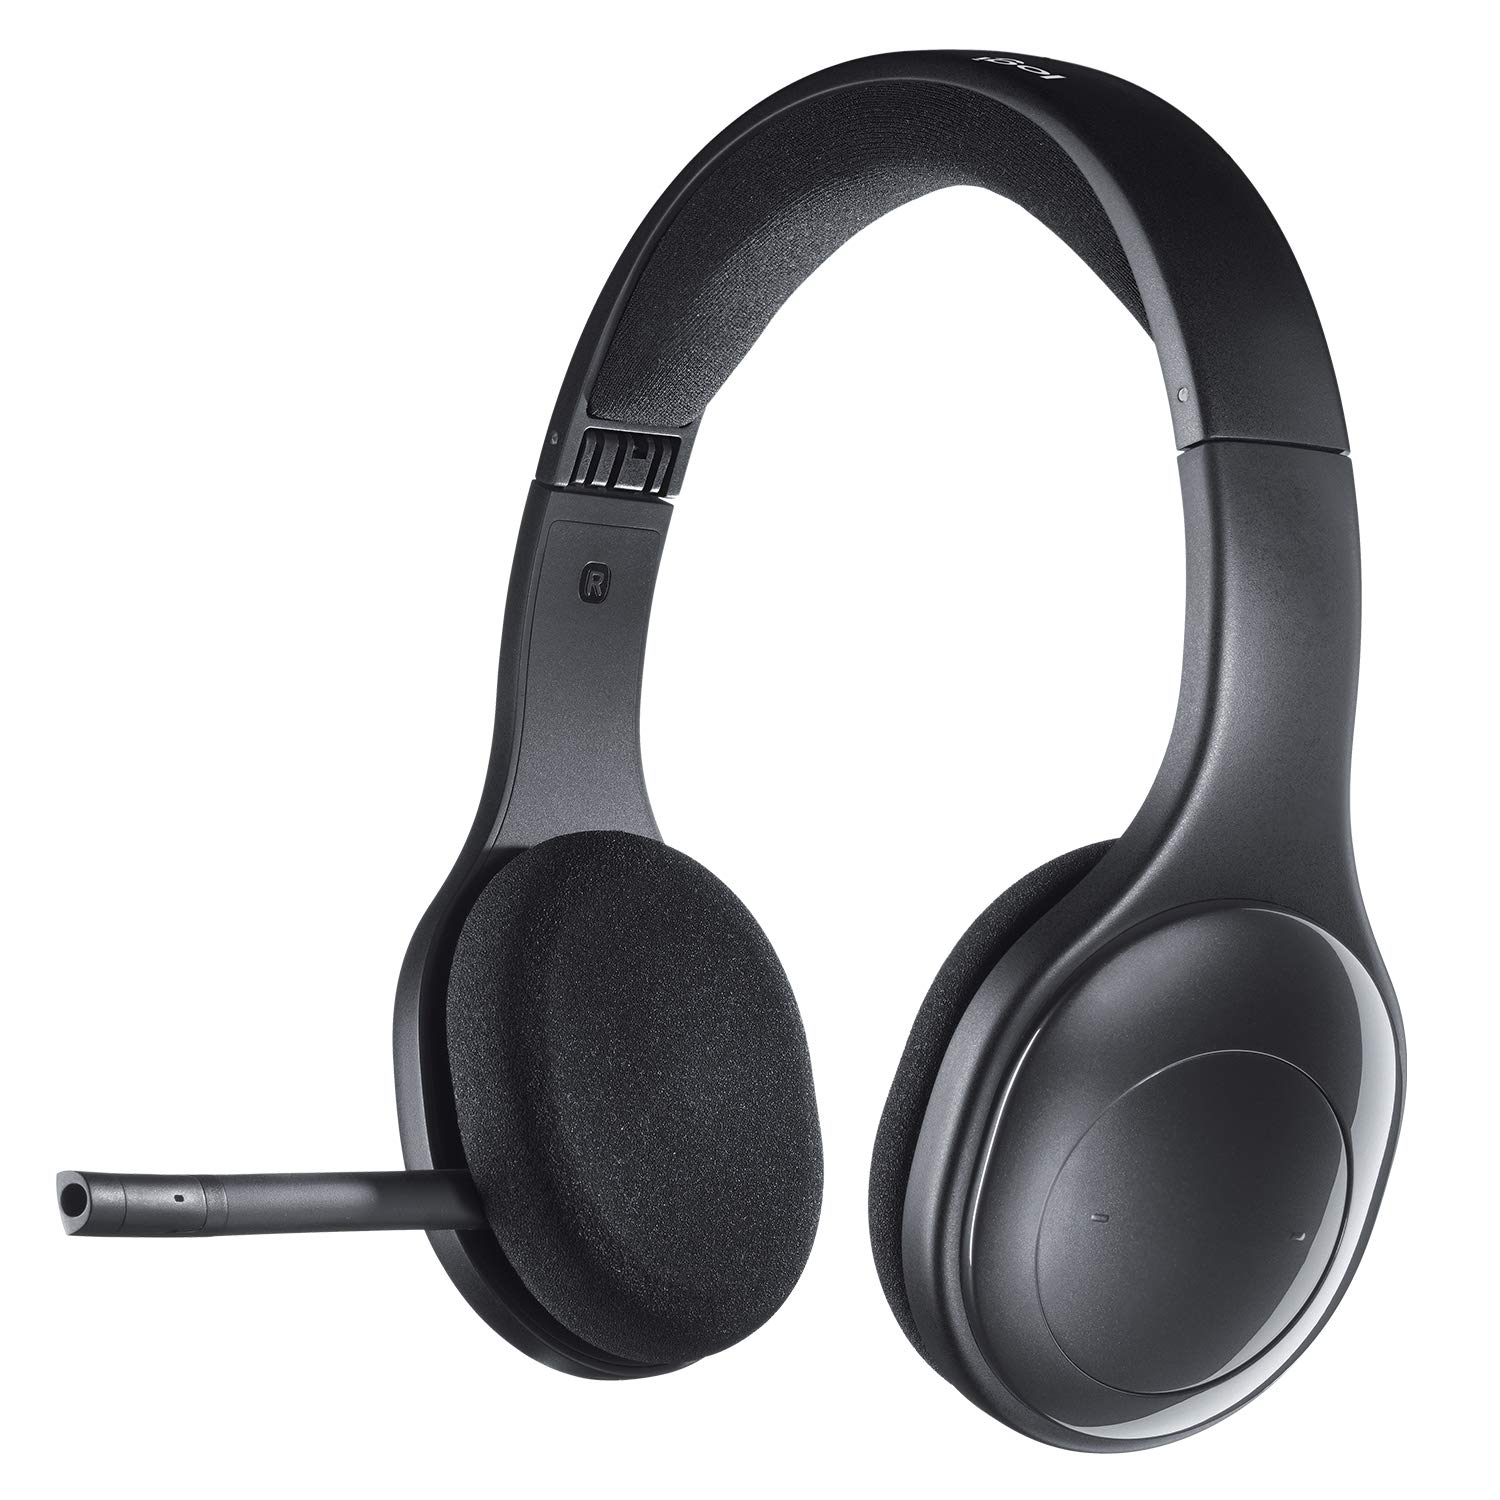 Logitech-H800-Bluetooth-Wireless-Headset-with-Mic-for-PC-Tablets-and-Smartphones